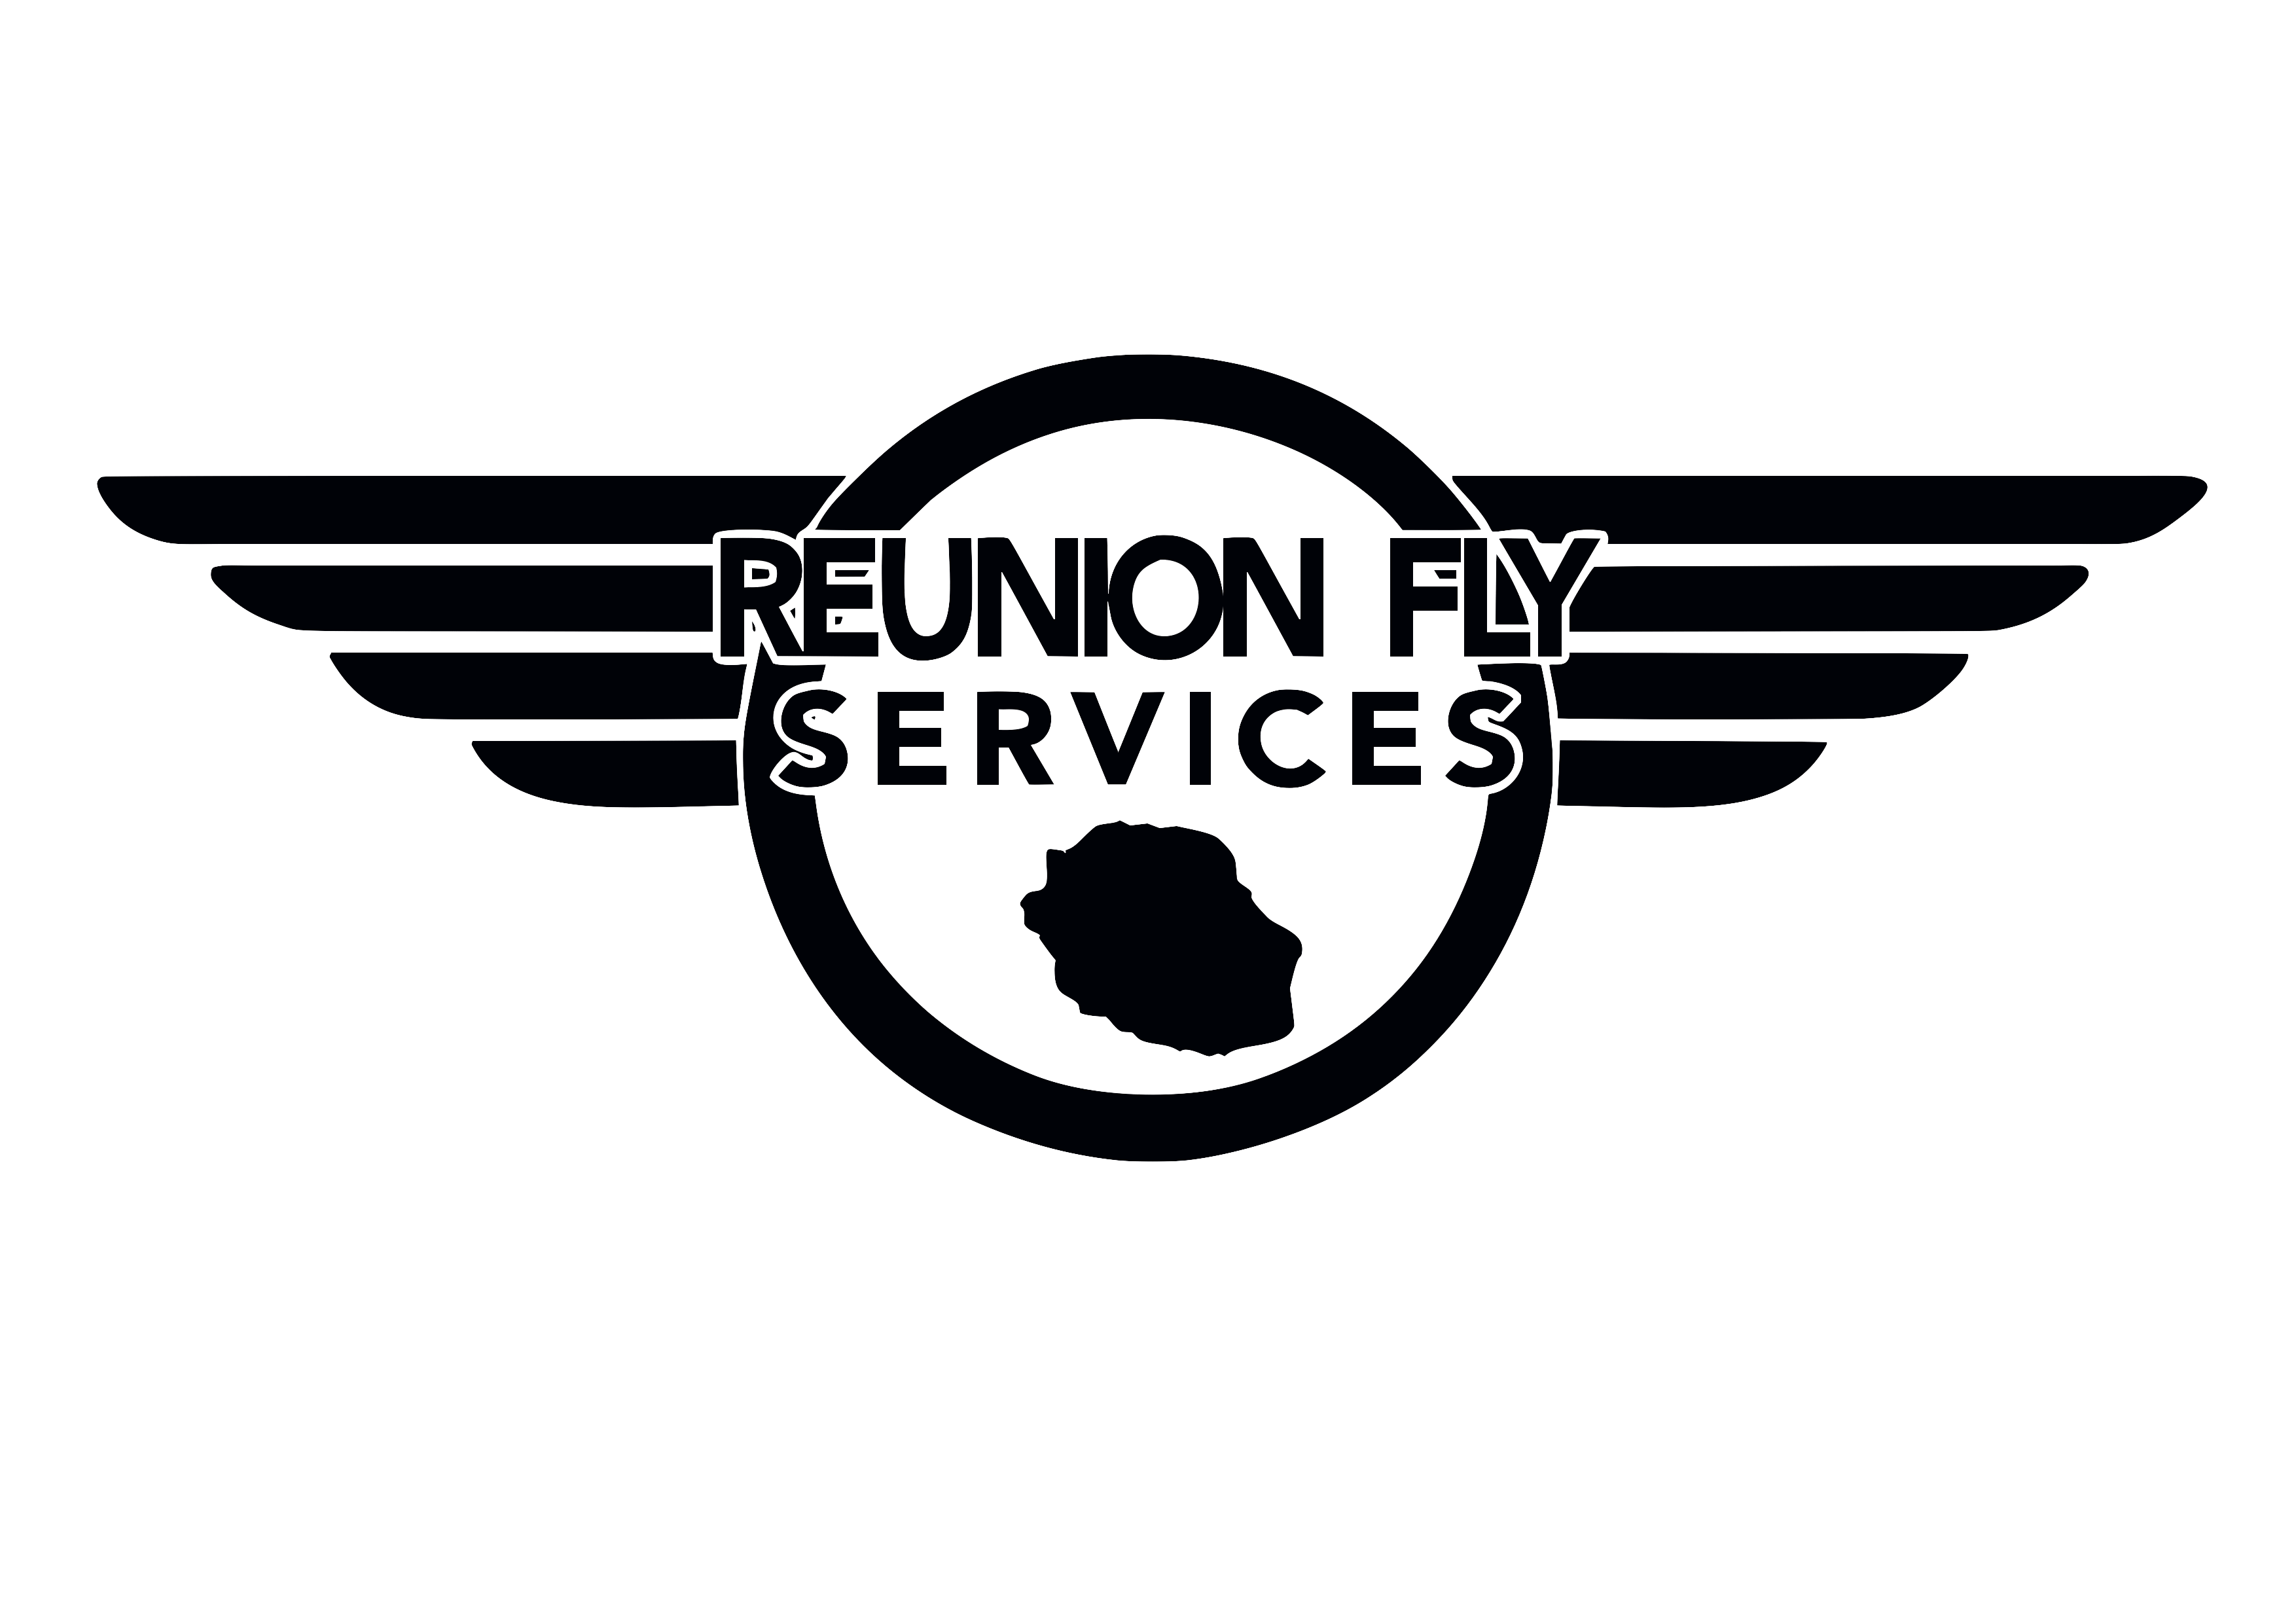 Reunion-Fly-Services